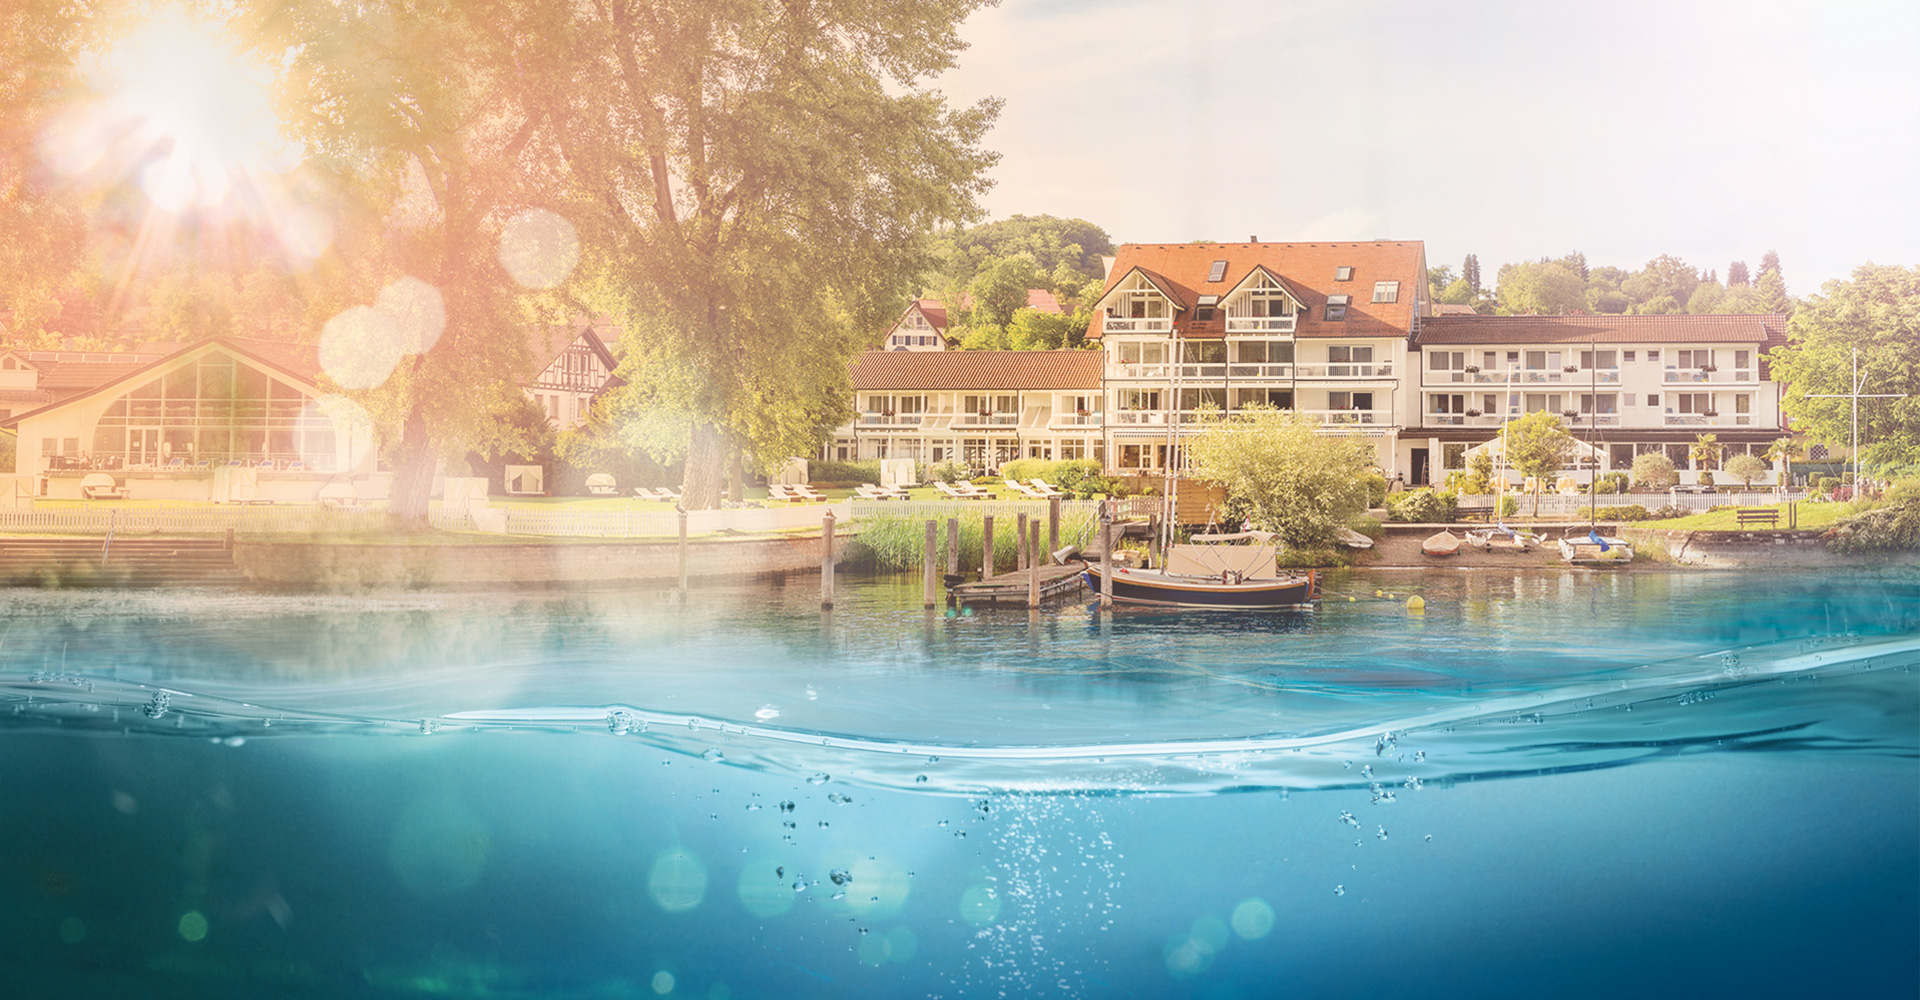 OPUS Marketing / Projekte / Hotel Hoeri am Bodensee / Bildsprache / Keyvisual